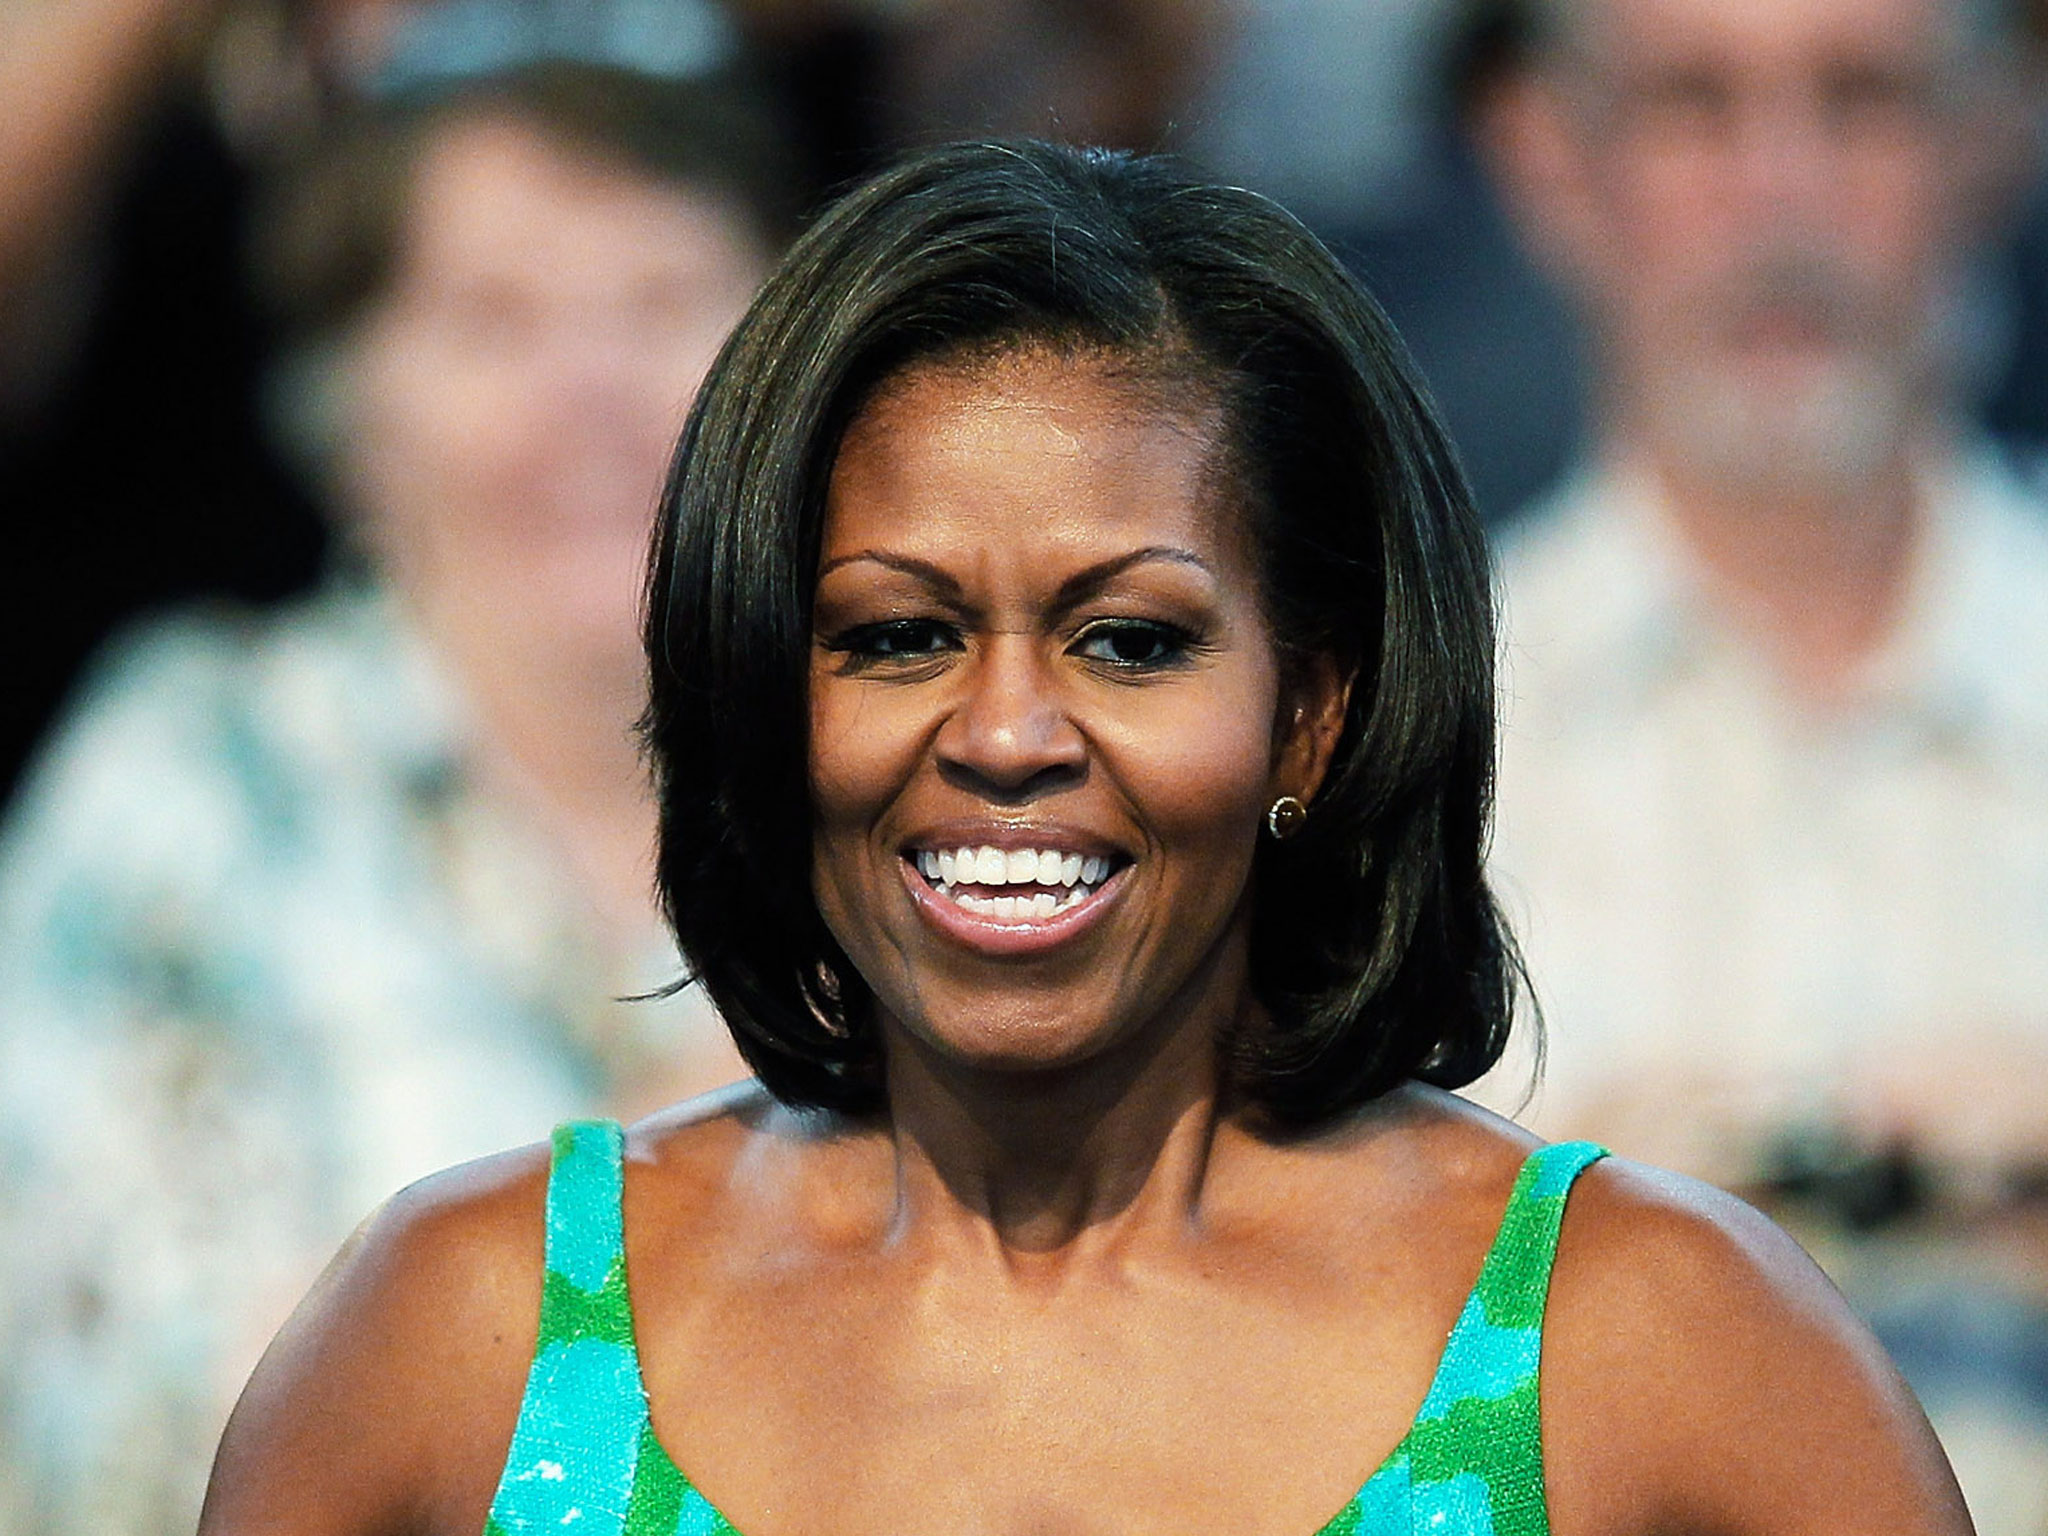 Students and parents petition against Michelle Obama speaking at Kansas high school graduation ceremony - Americas - World - The Independent